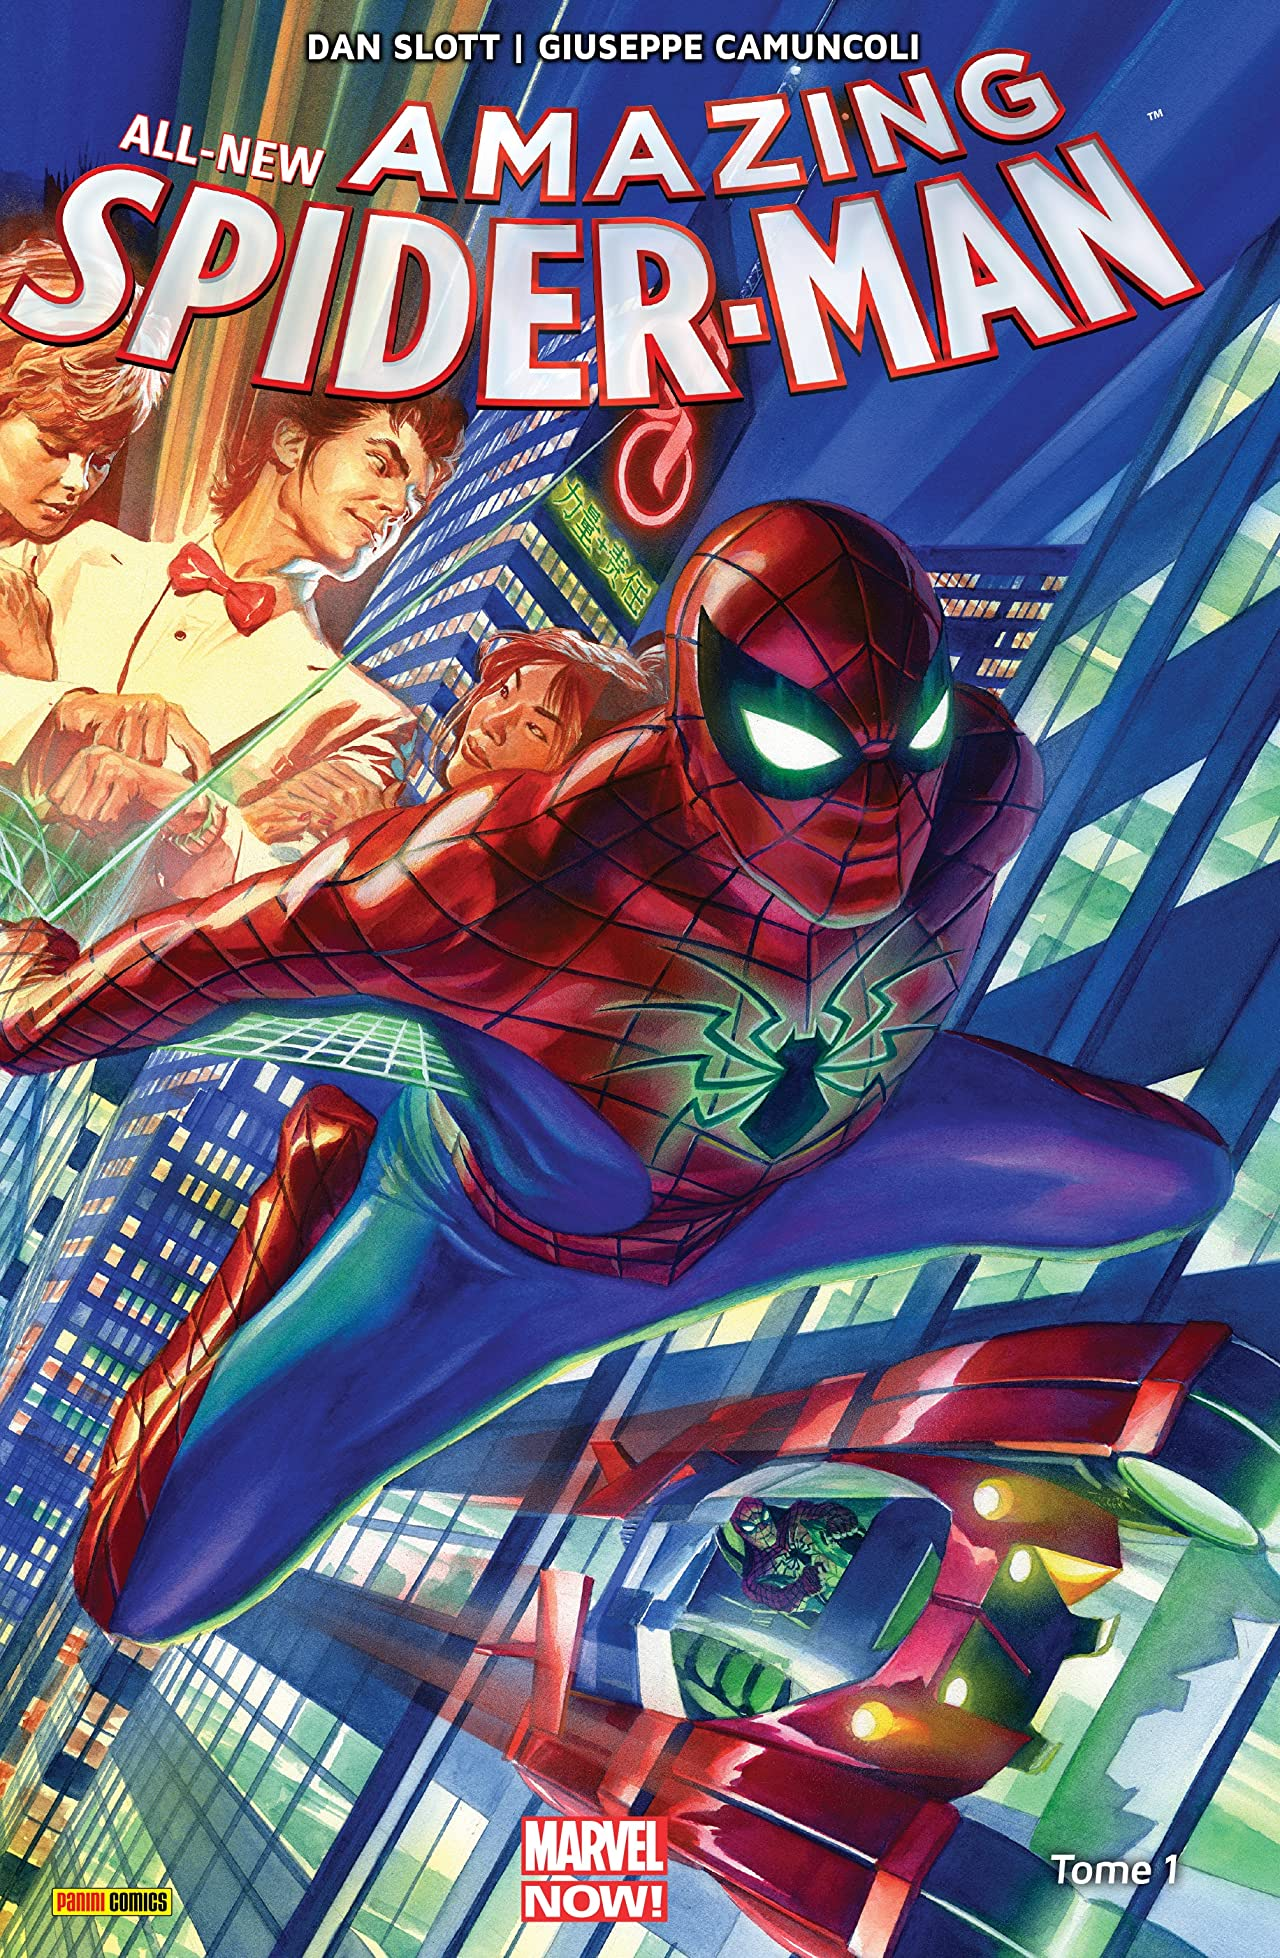 All-New Amazing Spider-Man Vol. 1: Partout dans le monde